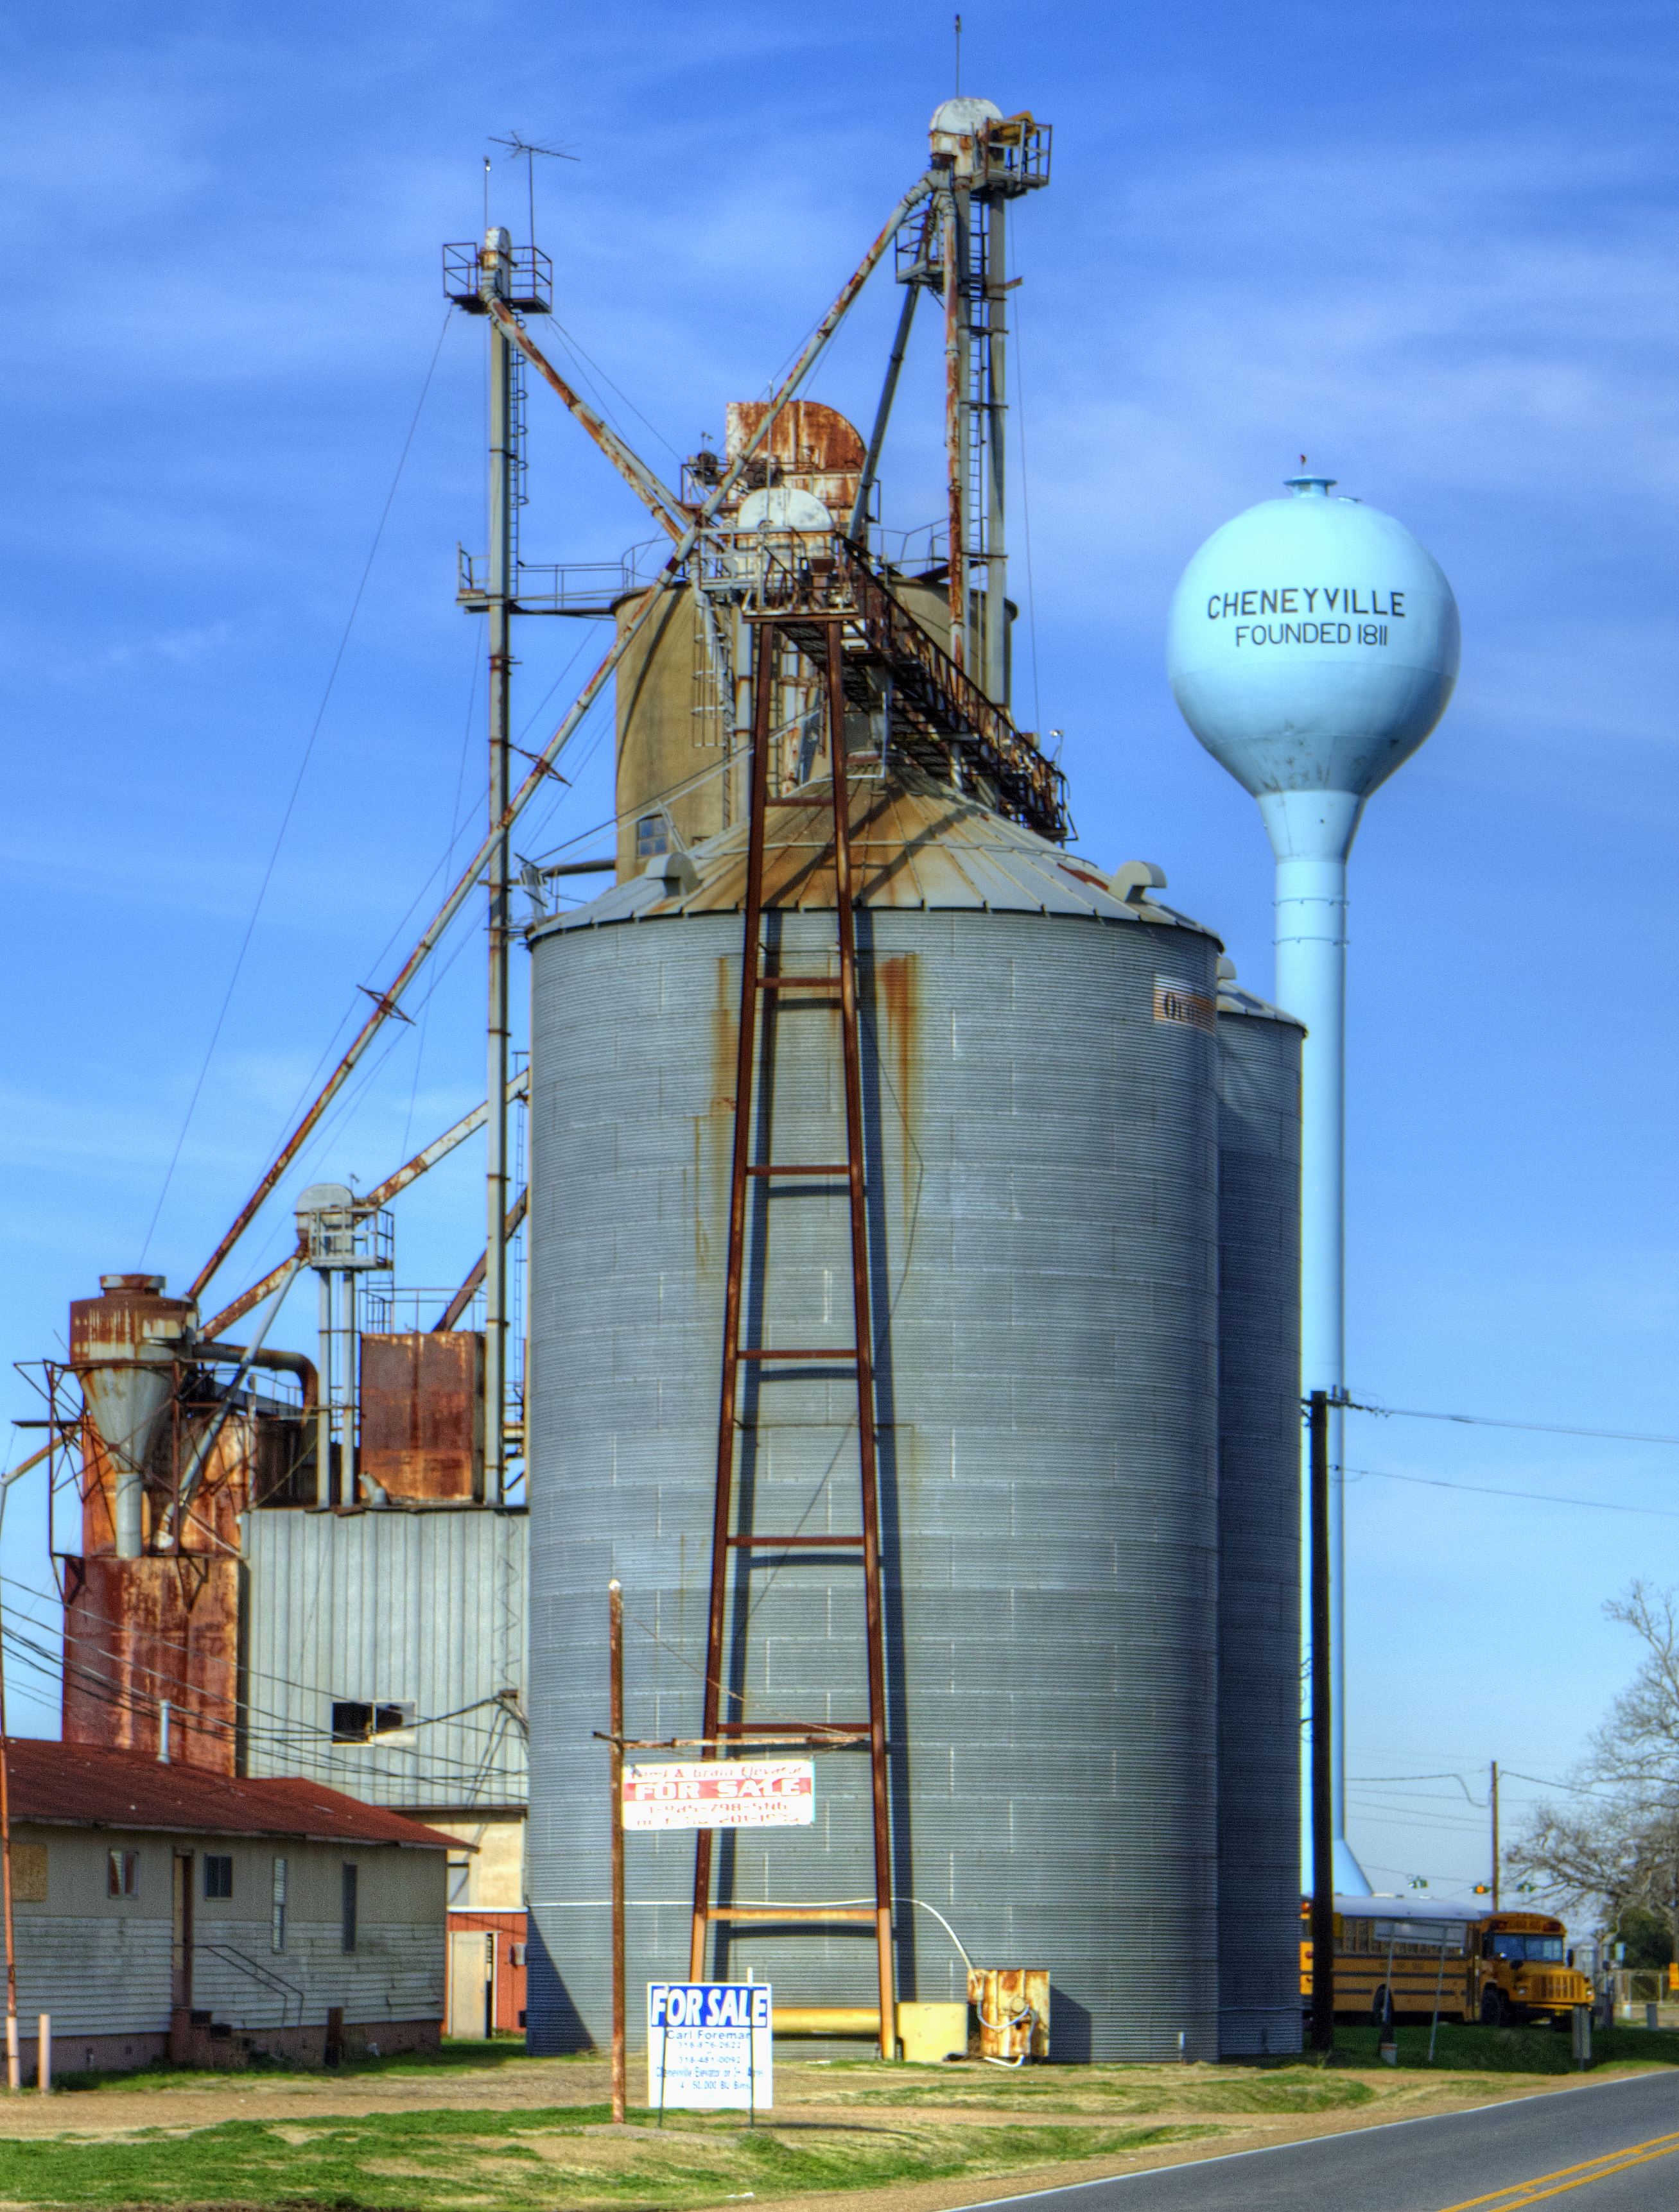 cheneyville dating The town of cheneyville had a population of 653 as of july 1, 2017 the primary coordinate point for cheneyville is located at latitude 31011 and longitude -922901 in.